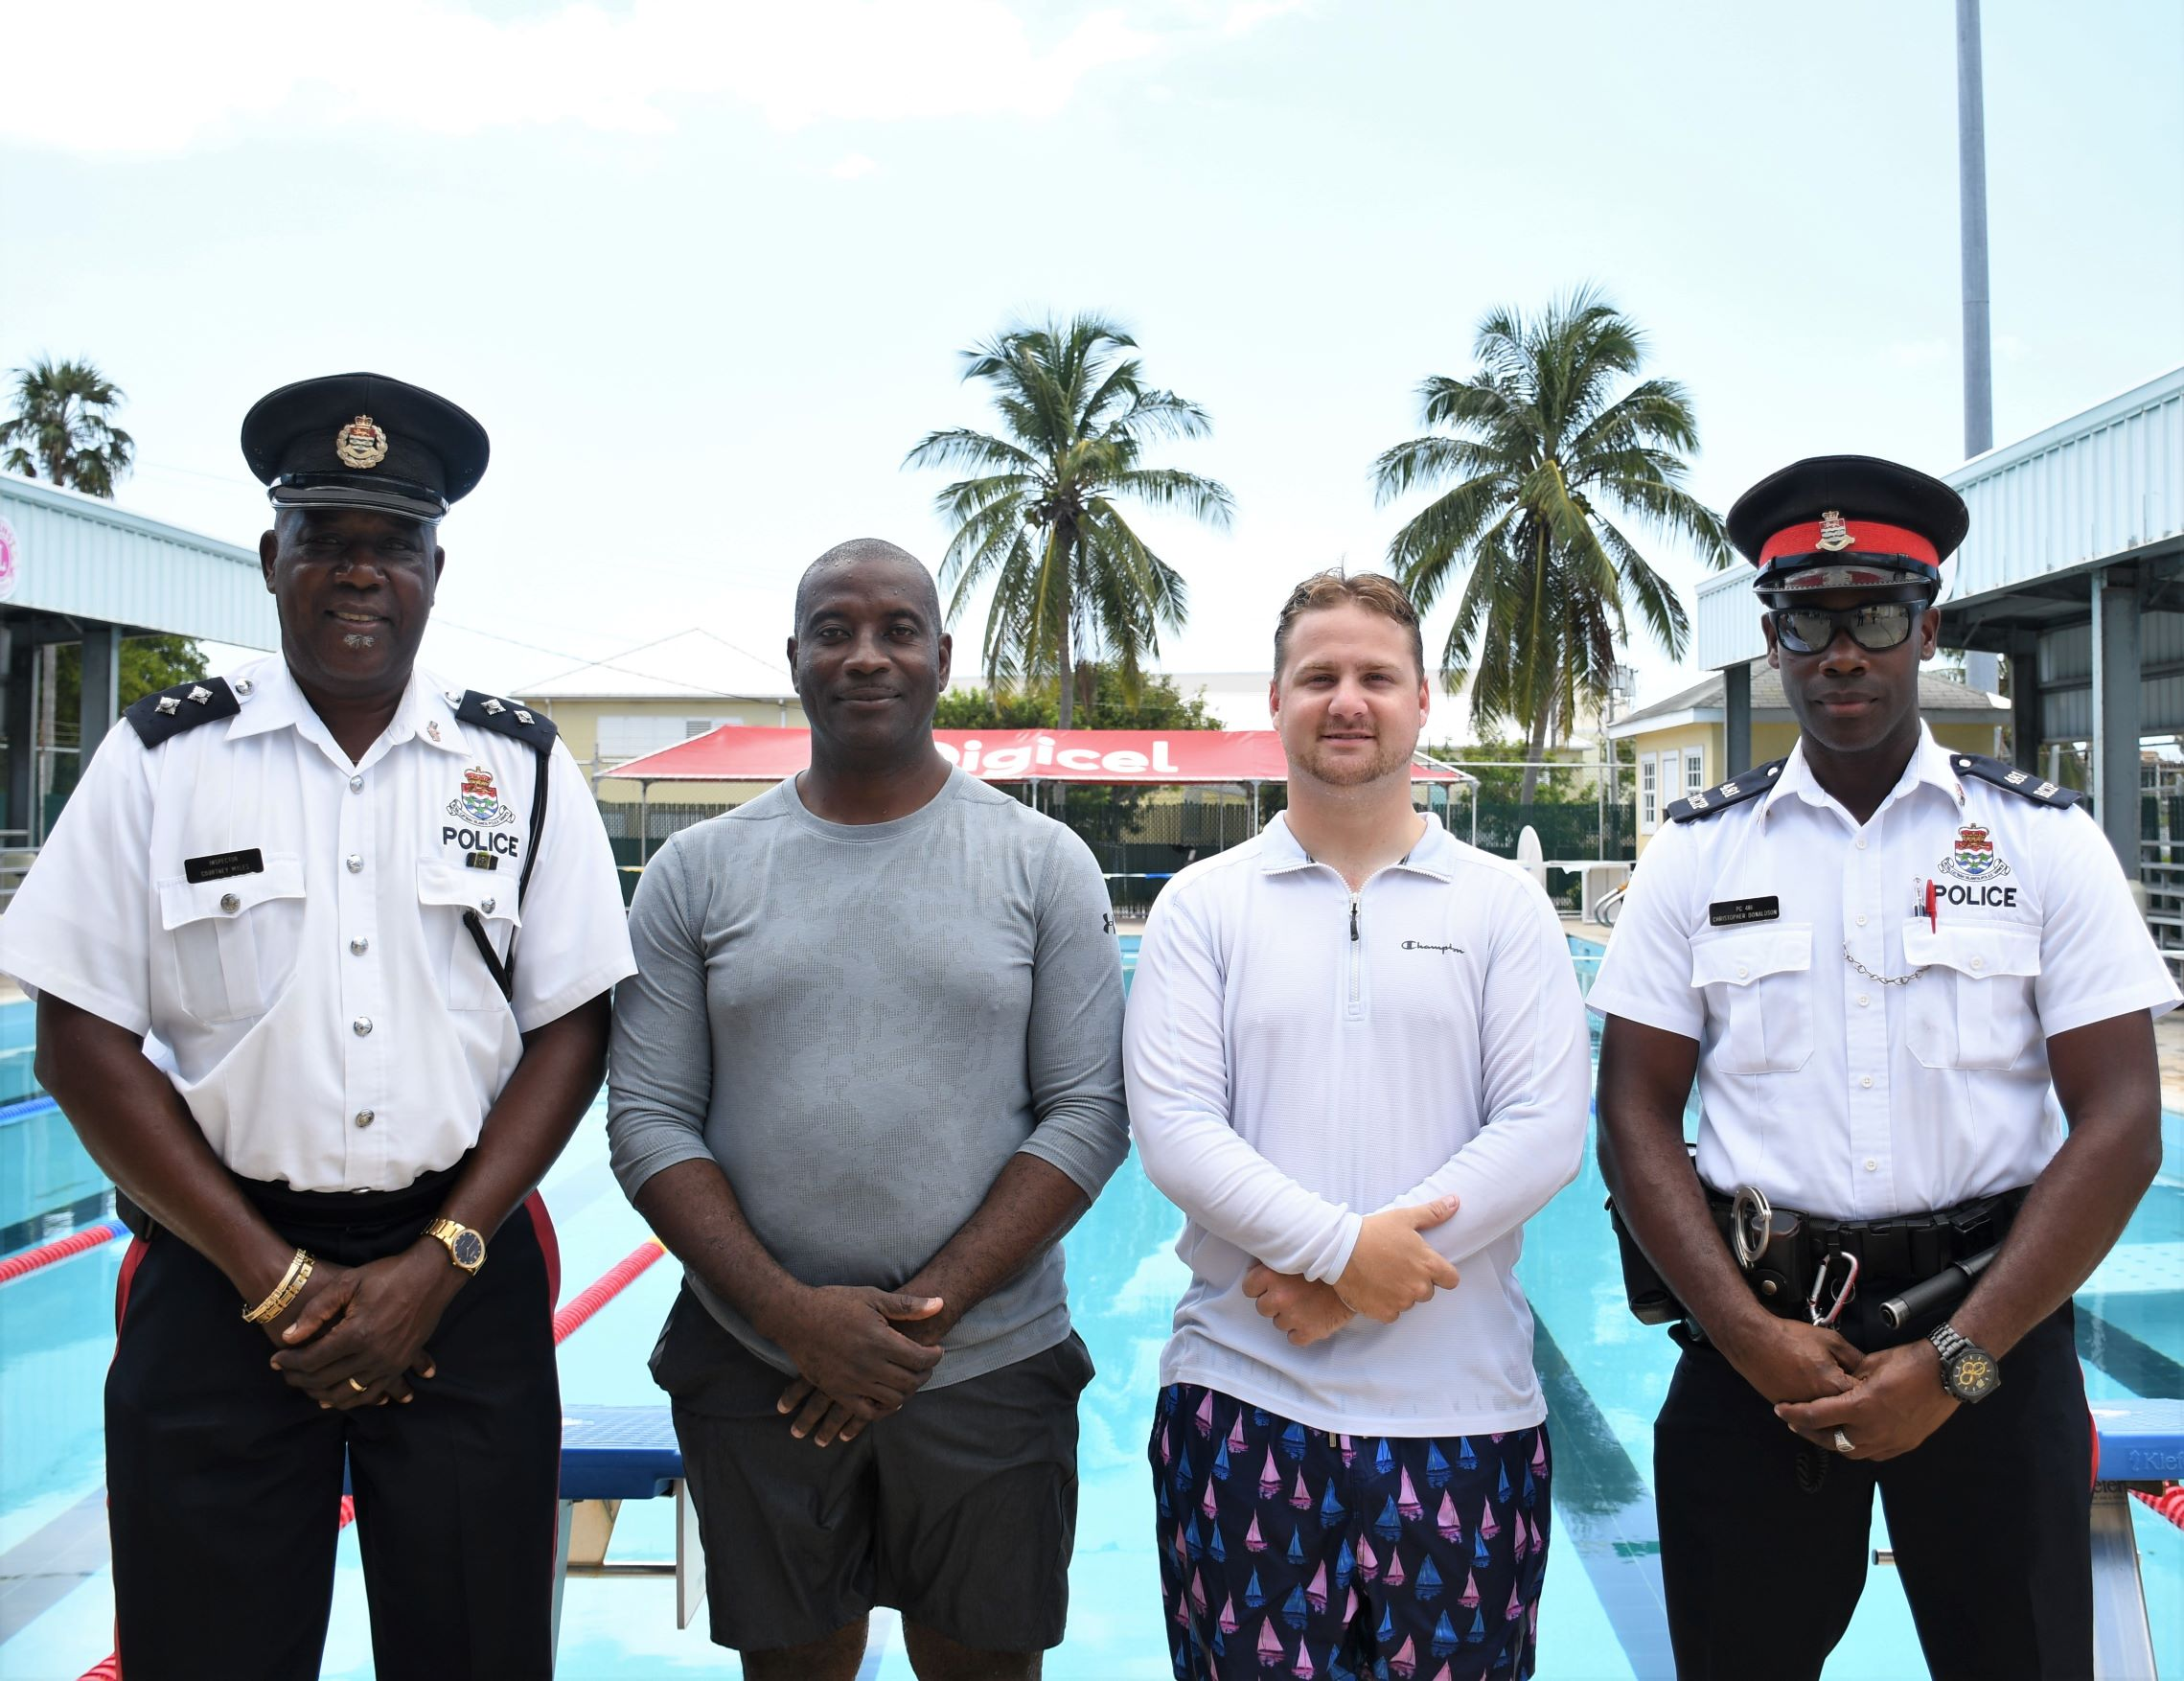 AC O'Connor and AC Dixon (middle left and right) worked with the children in the pool and were joined by Inspector Myles and PC Donaldson (far left and right) at the Lion's Aquatic Centre.